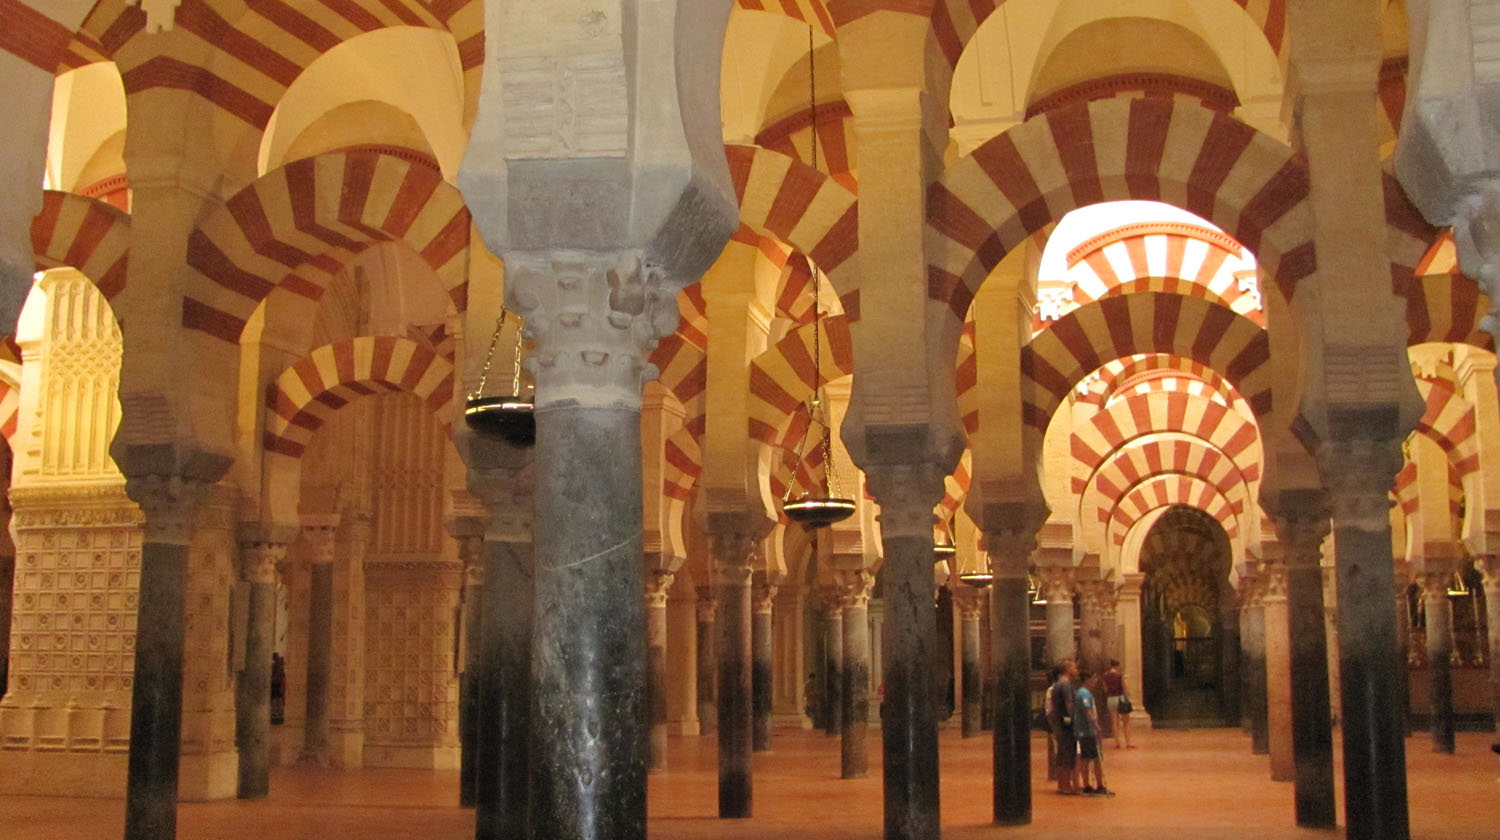 Another view inside the Mesquita.jpg